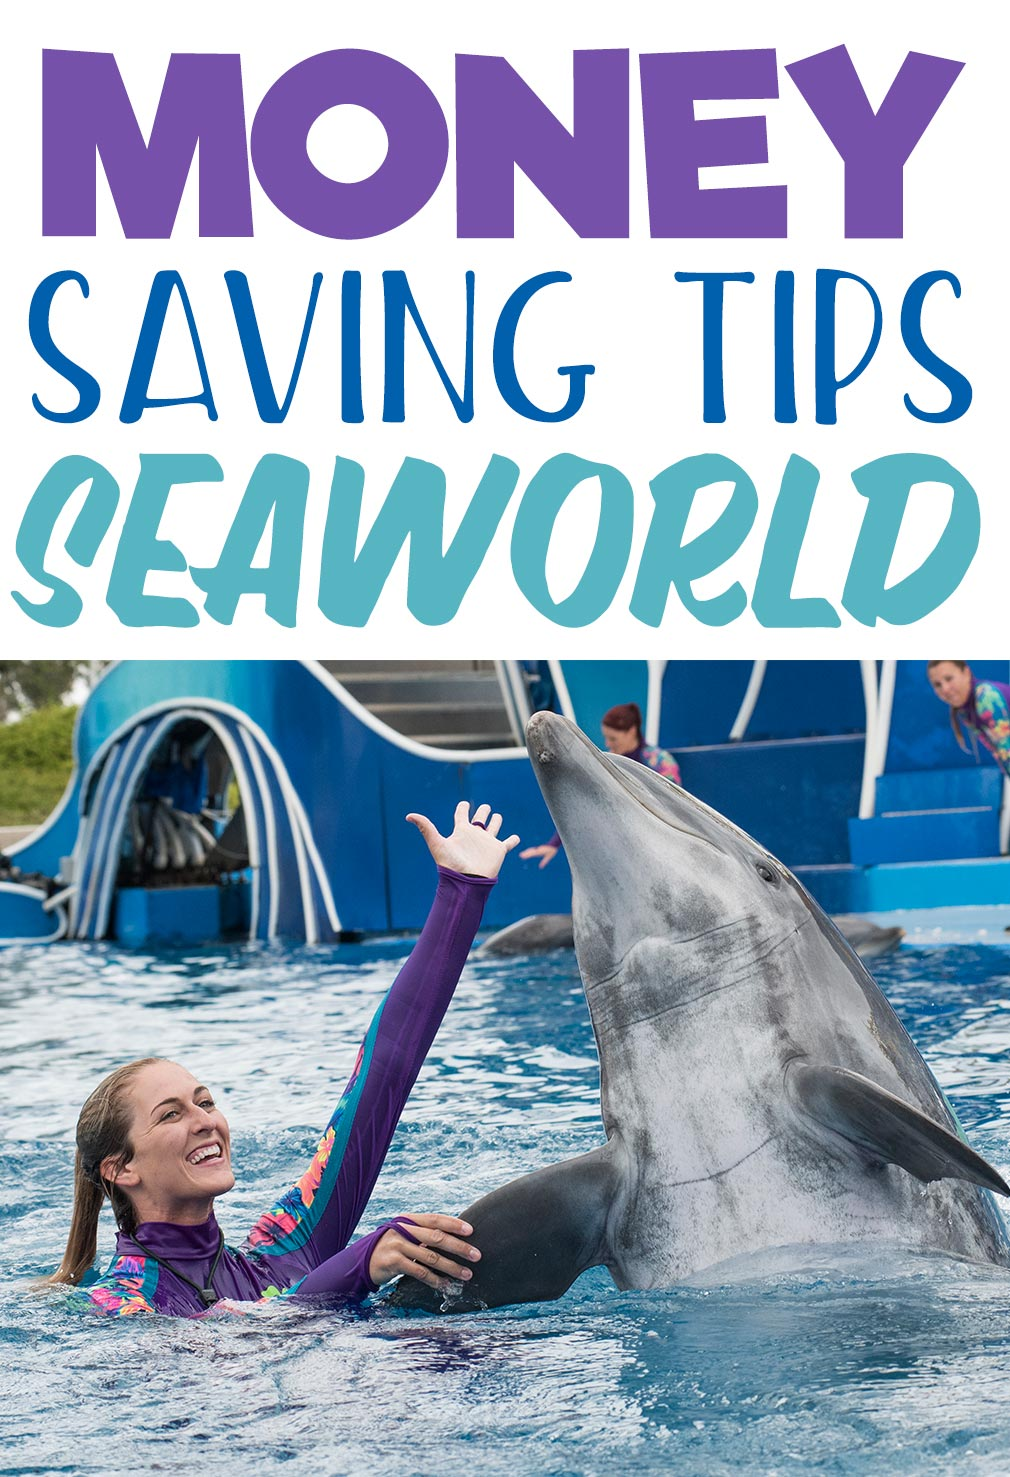 Money Saving Tips for SeaWorld